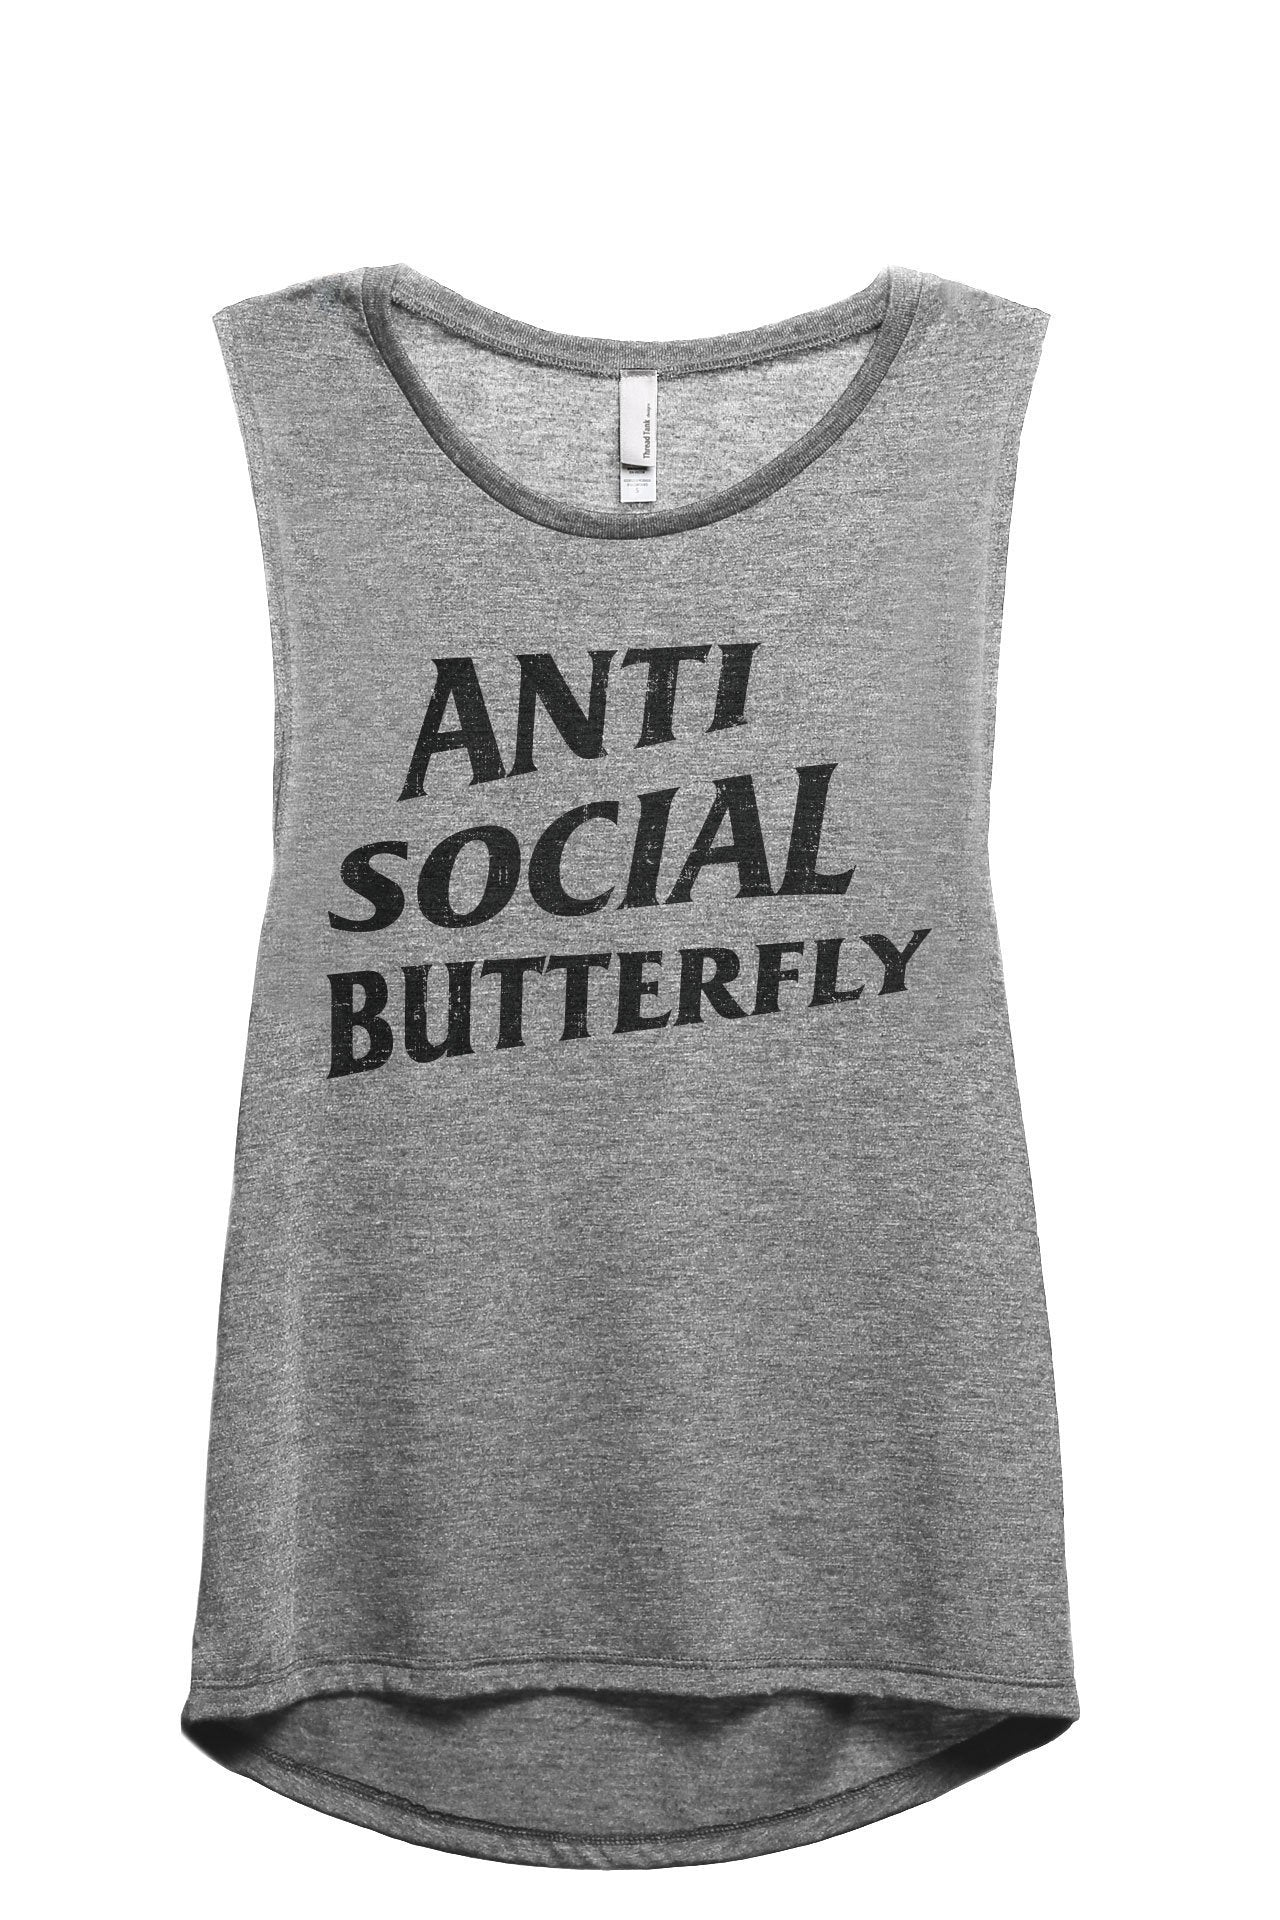 Anti Social Butterfly Women's Relaxed Muscle Tank Tee Heather Grey